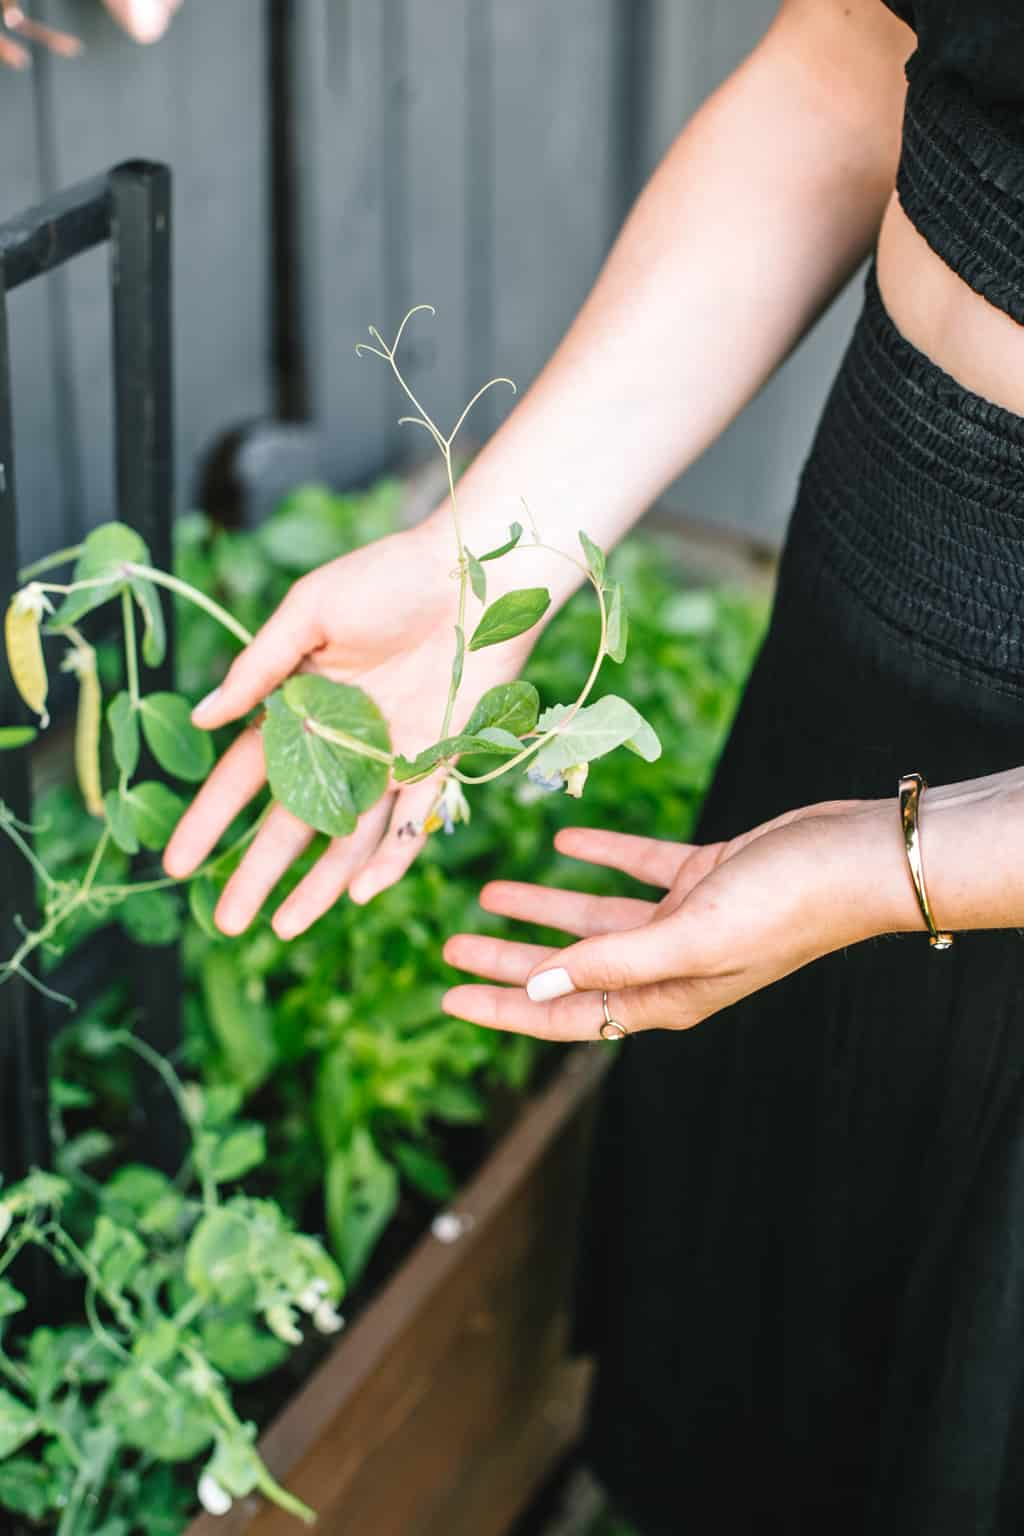 Holding a pea plant in a vegetable garden